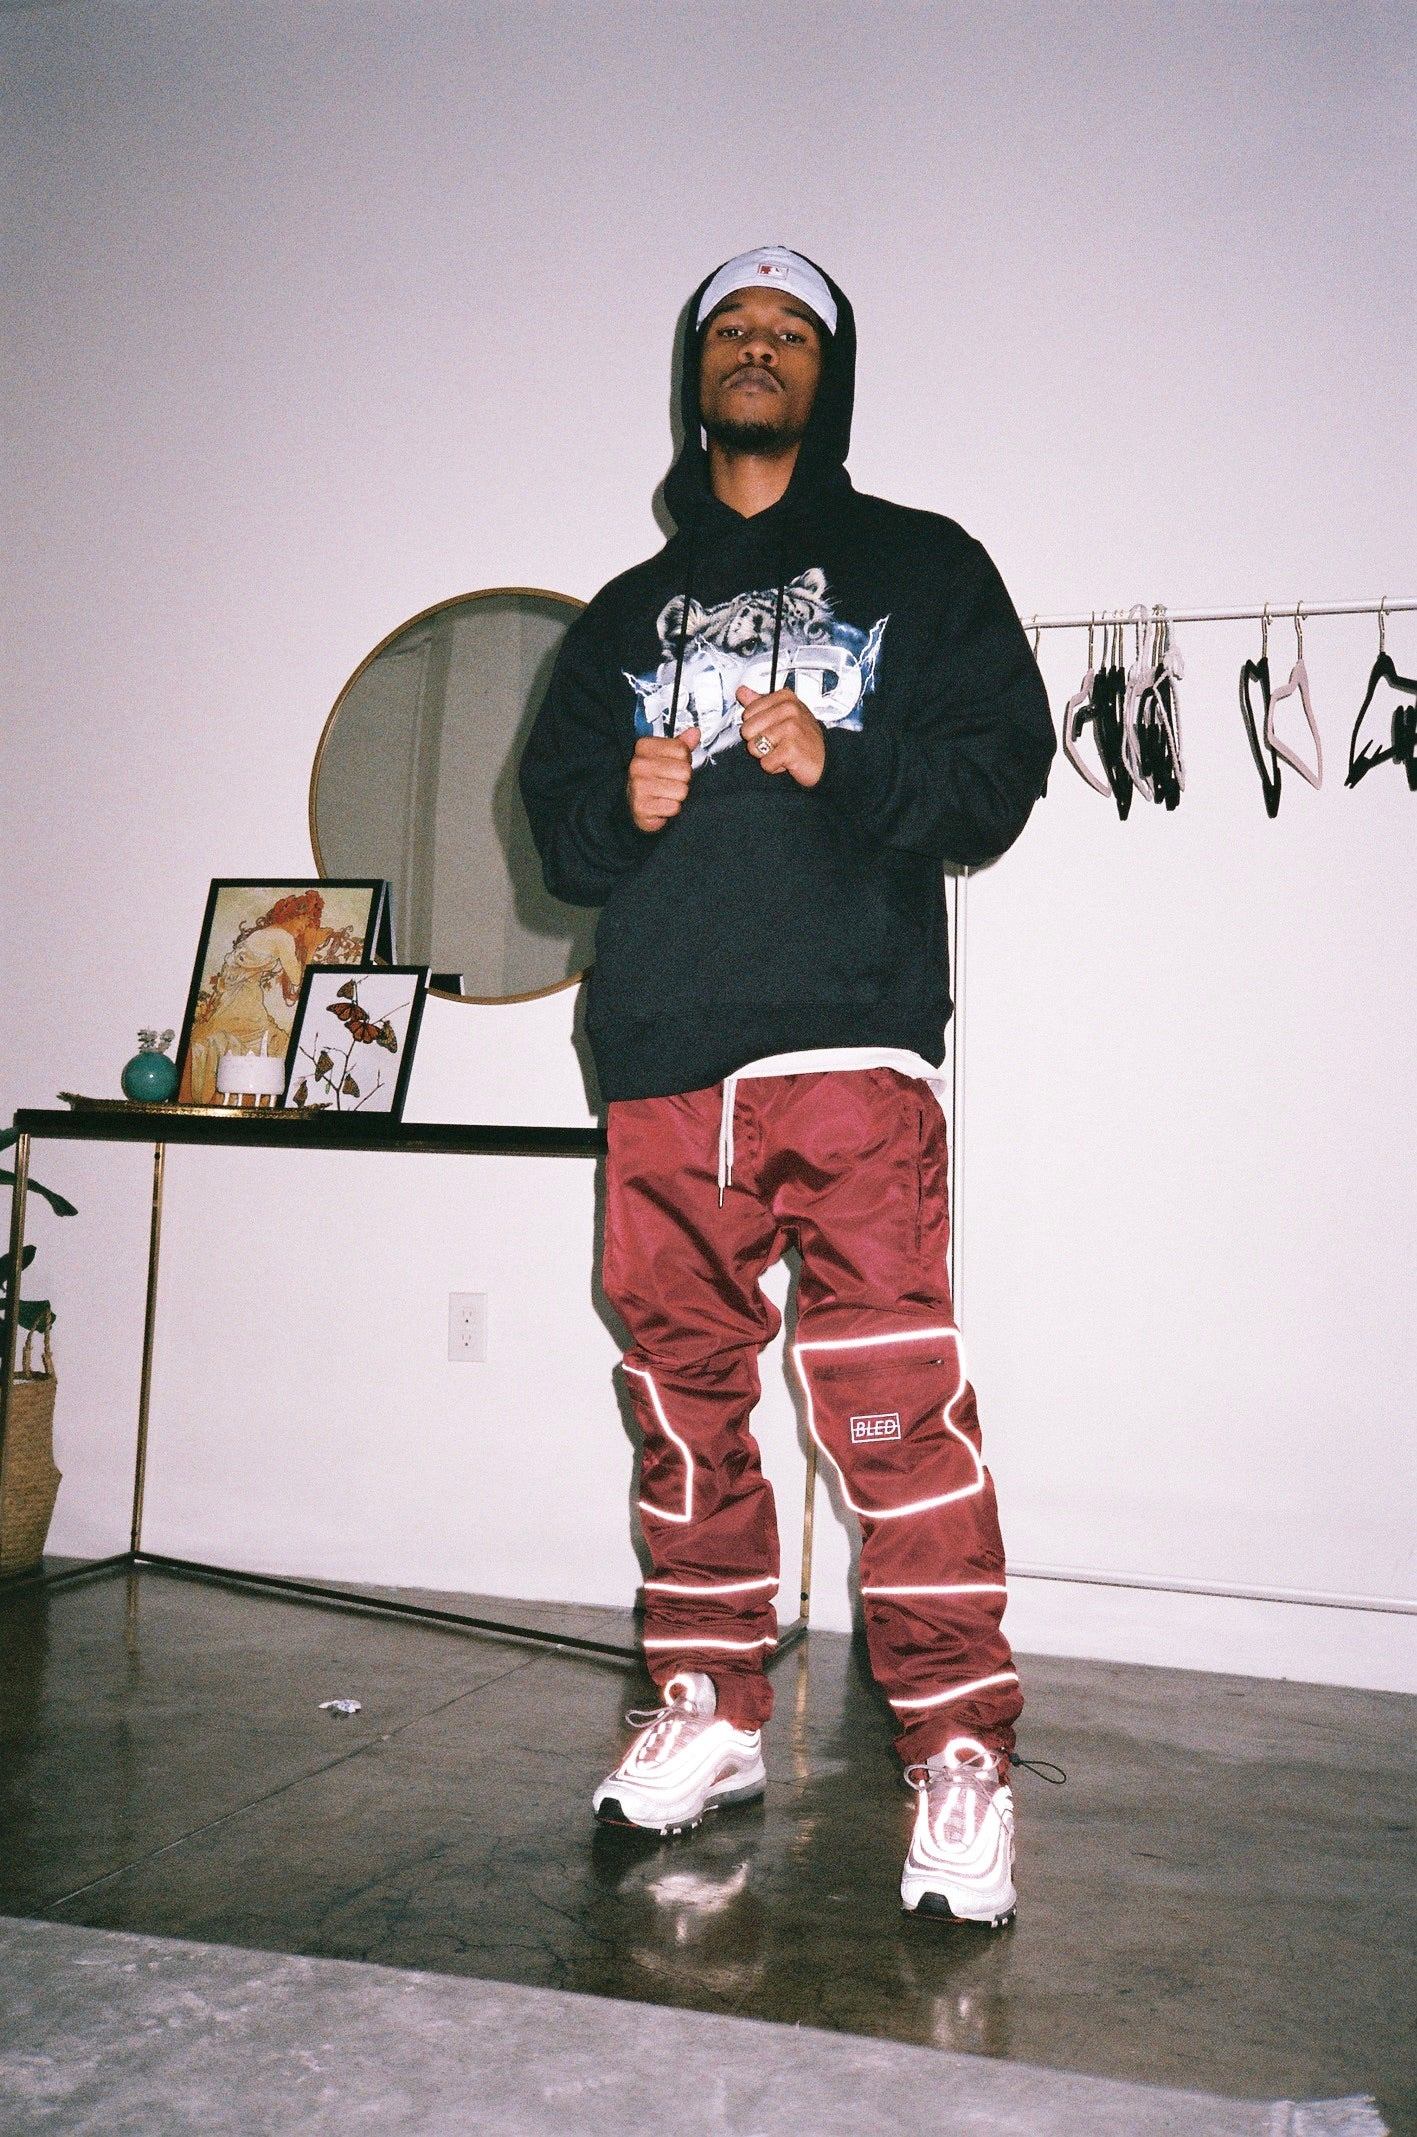 bled clothing, reflective pant, reflective track pant, bled pant, 3m pant, track pants, streetwear, reflective trousers, reflective sweatpant, hypebeast, bled fashion, bled los angeles, burgundy